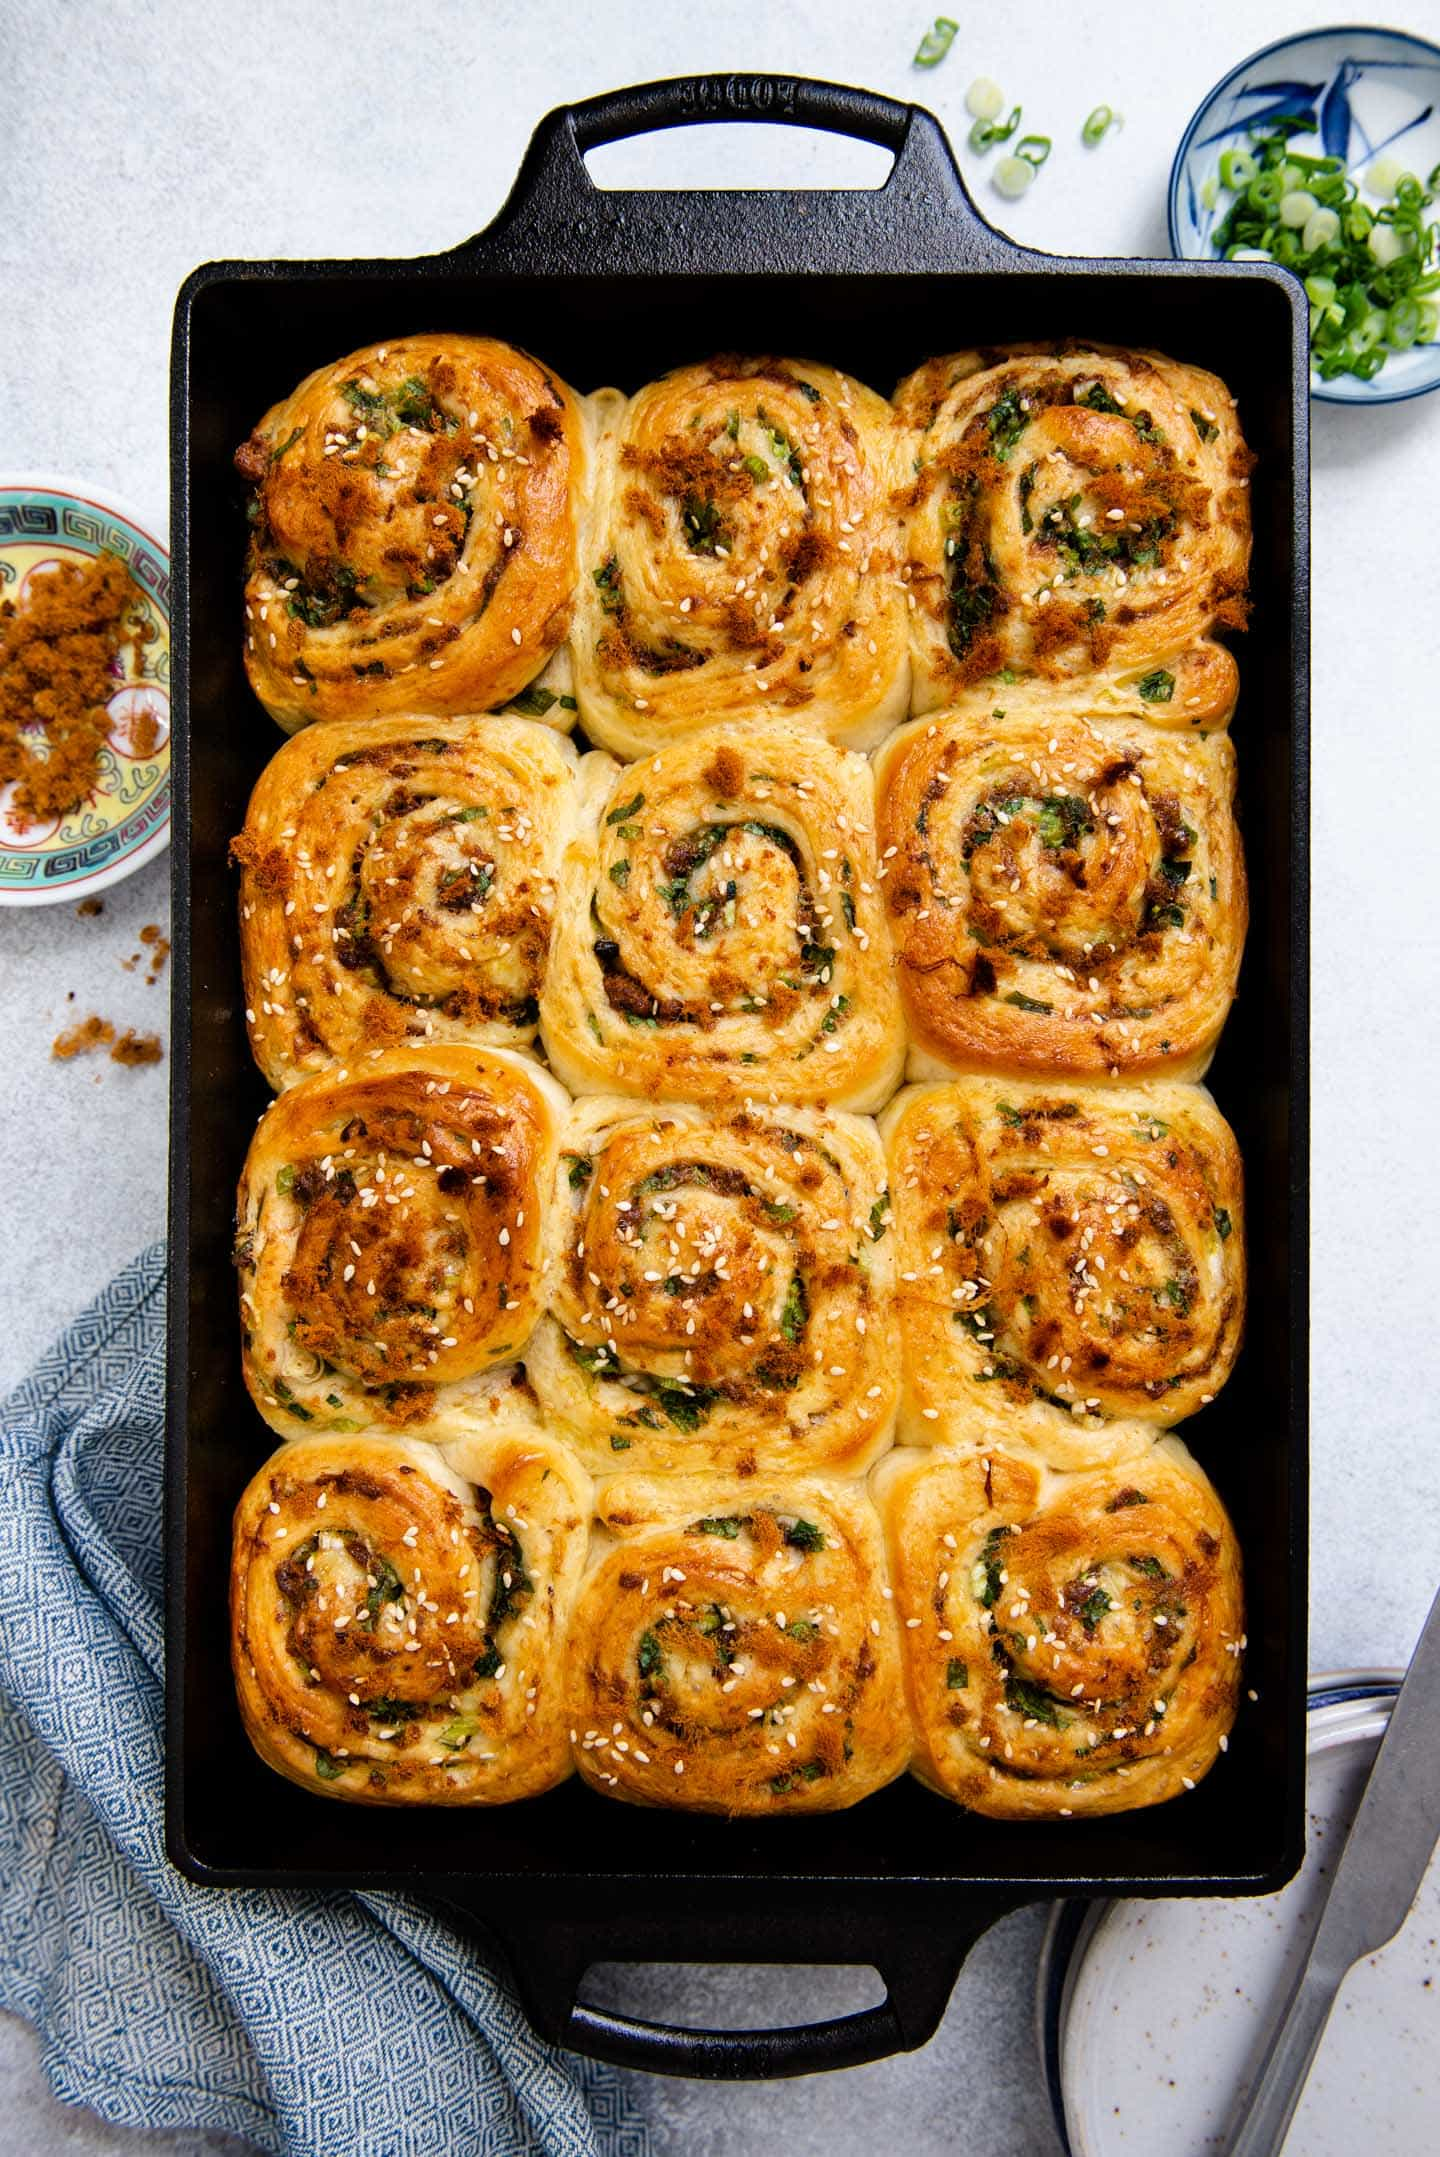 Photo of scallion and pork floss rolls in a cast iron casserole pan